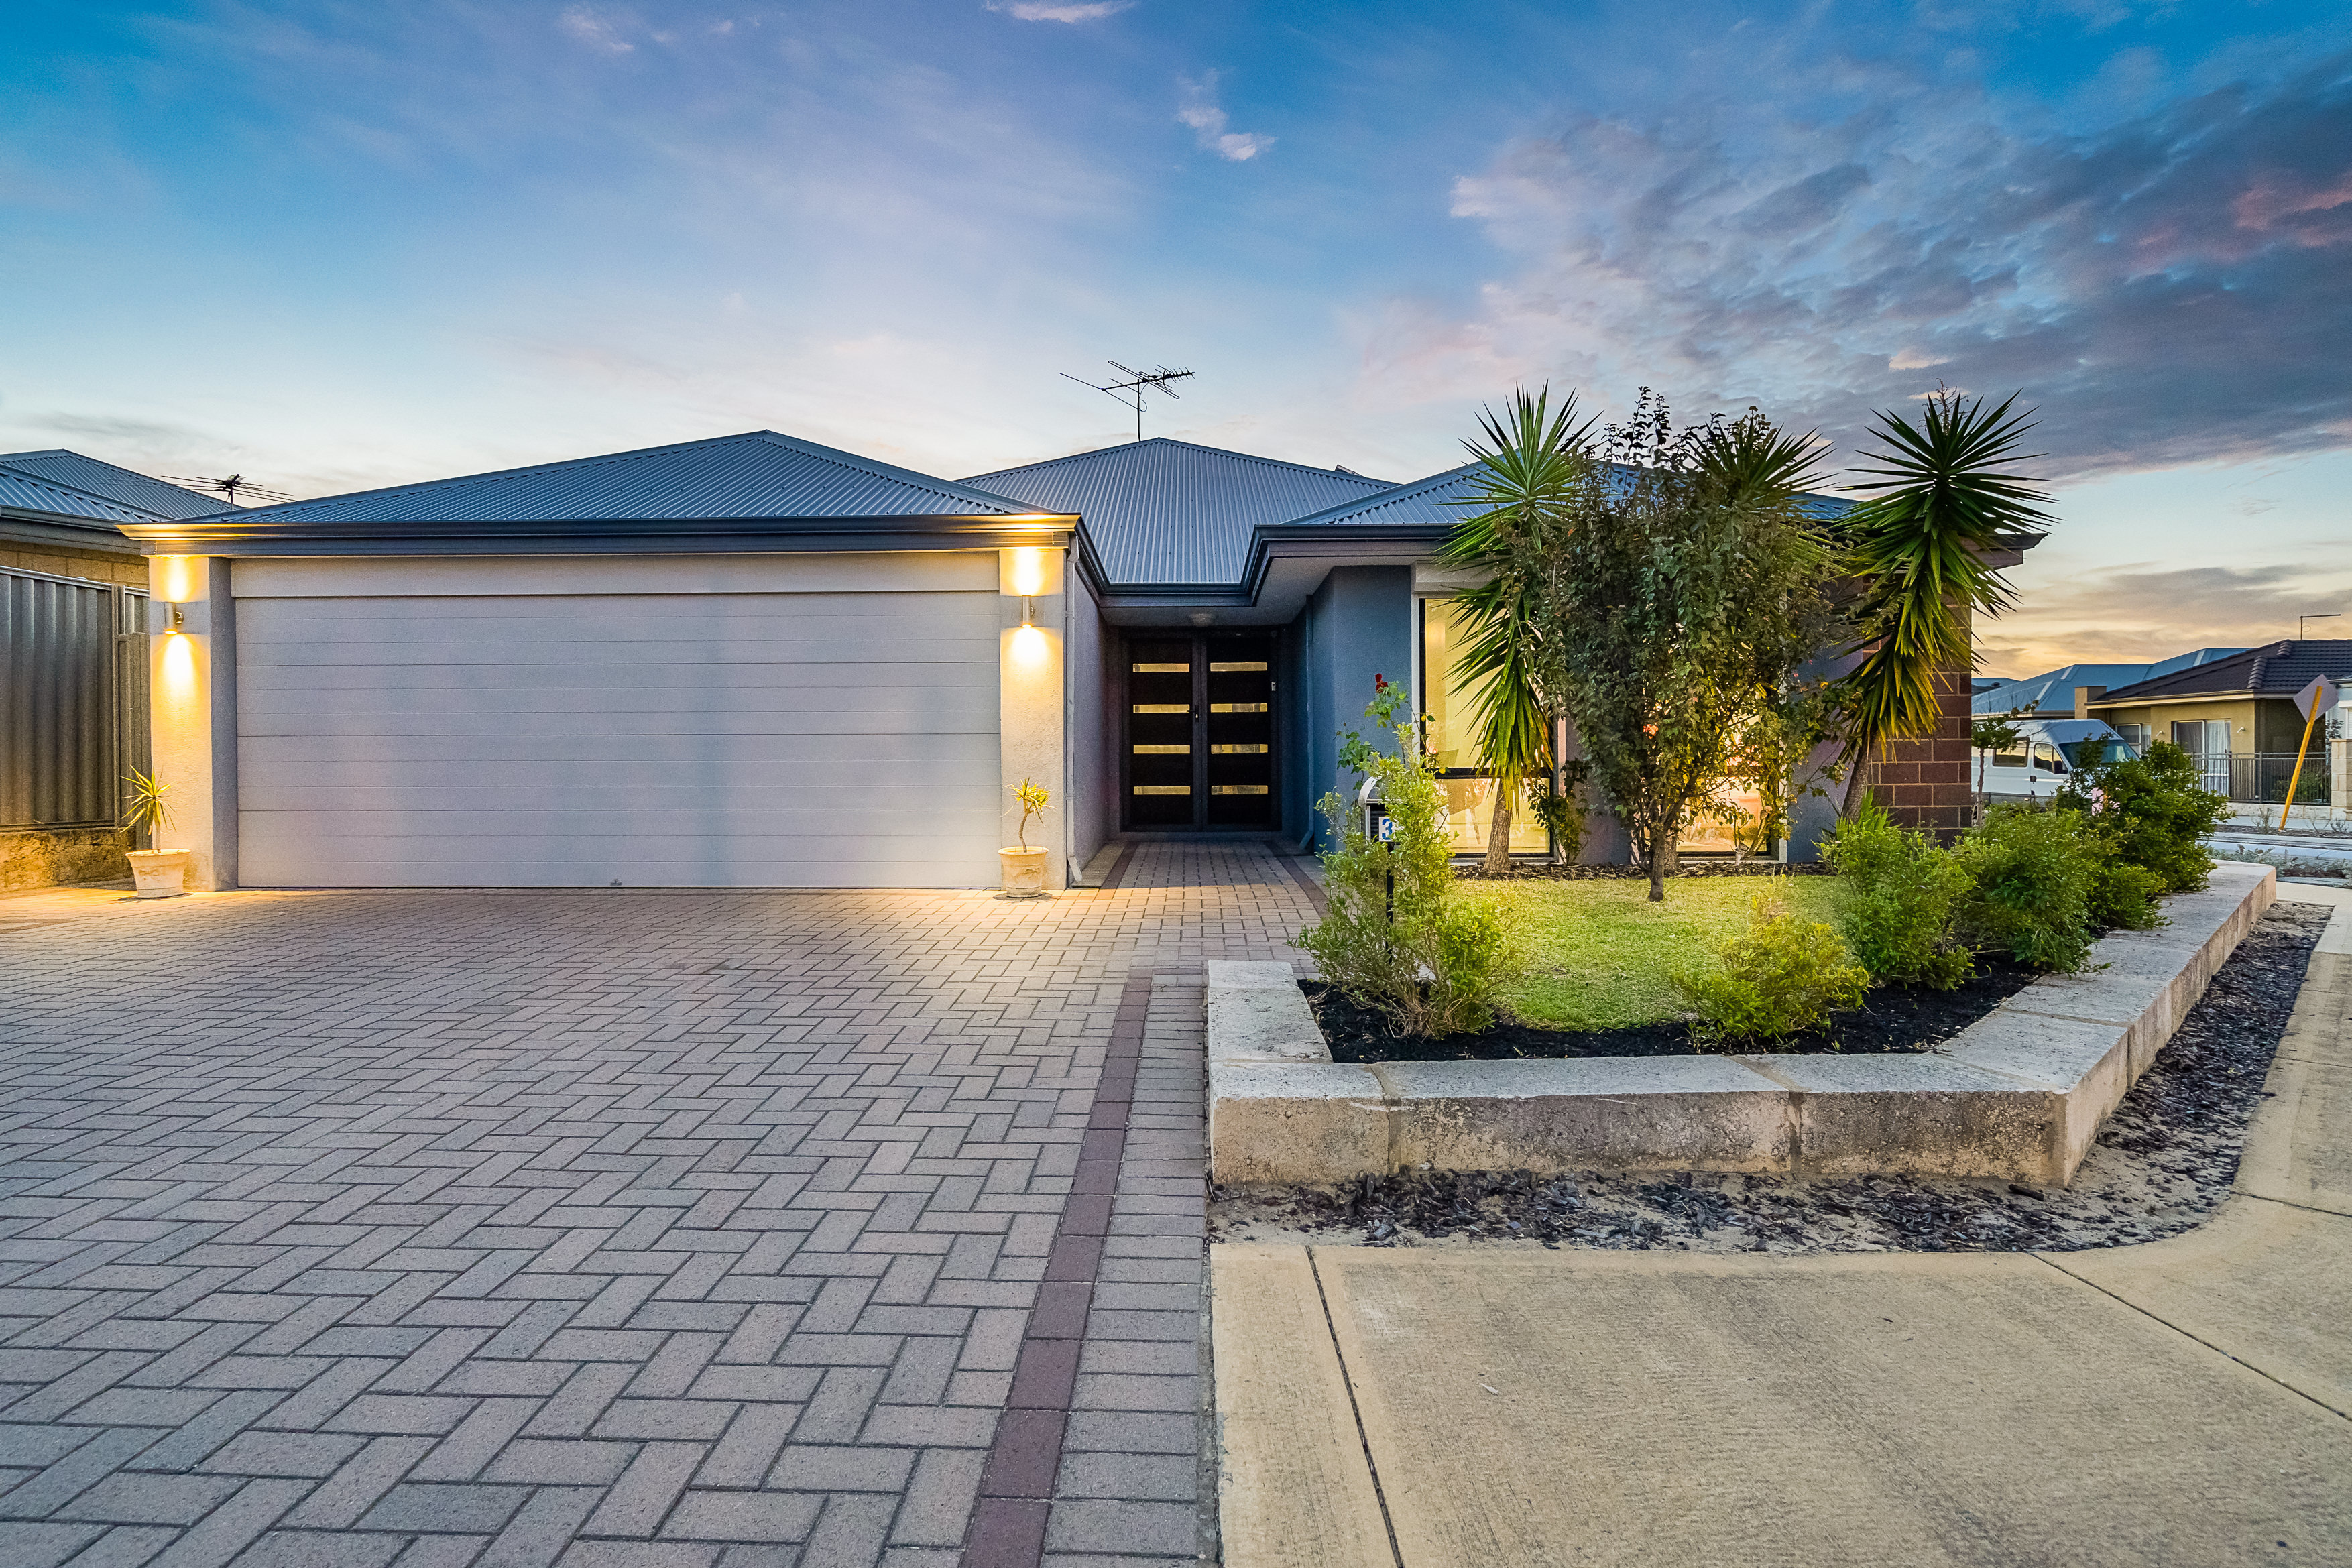 32 Cornforth Way Piara Waters 6112